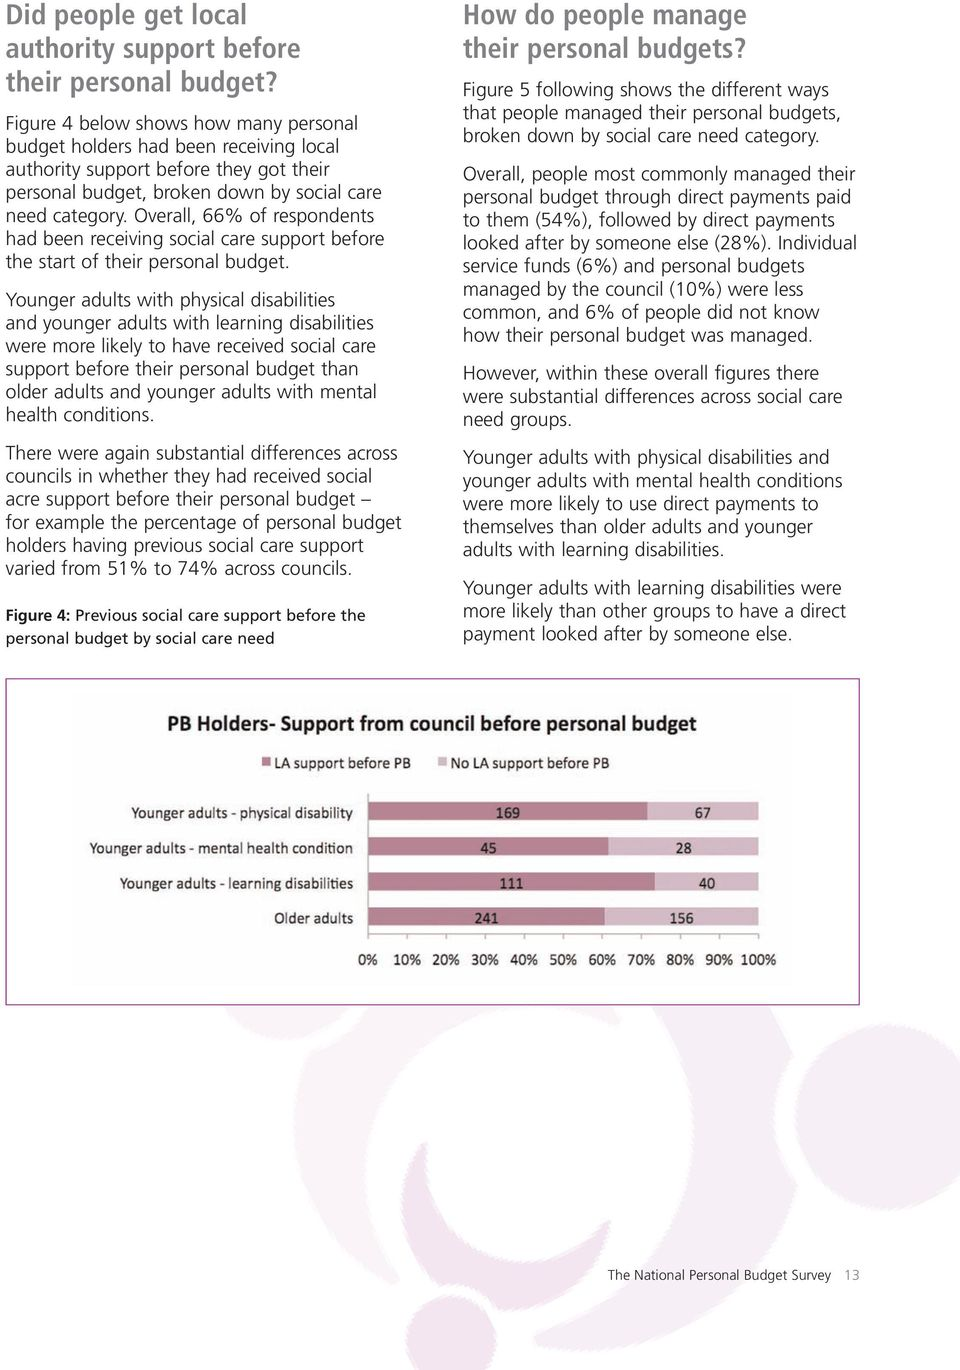 Overall, 66% of respondents had been receiving social care support before the start of their personal budget.